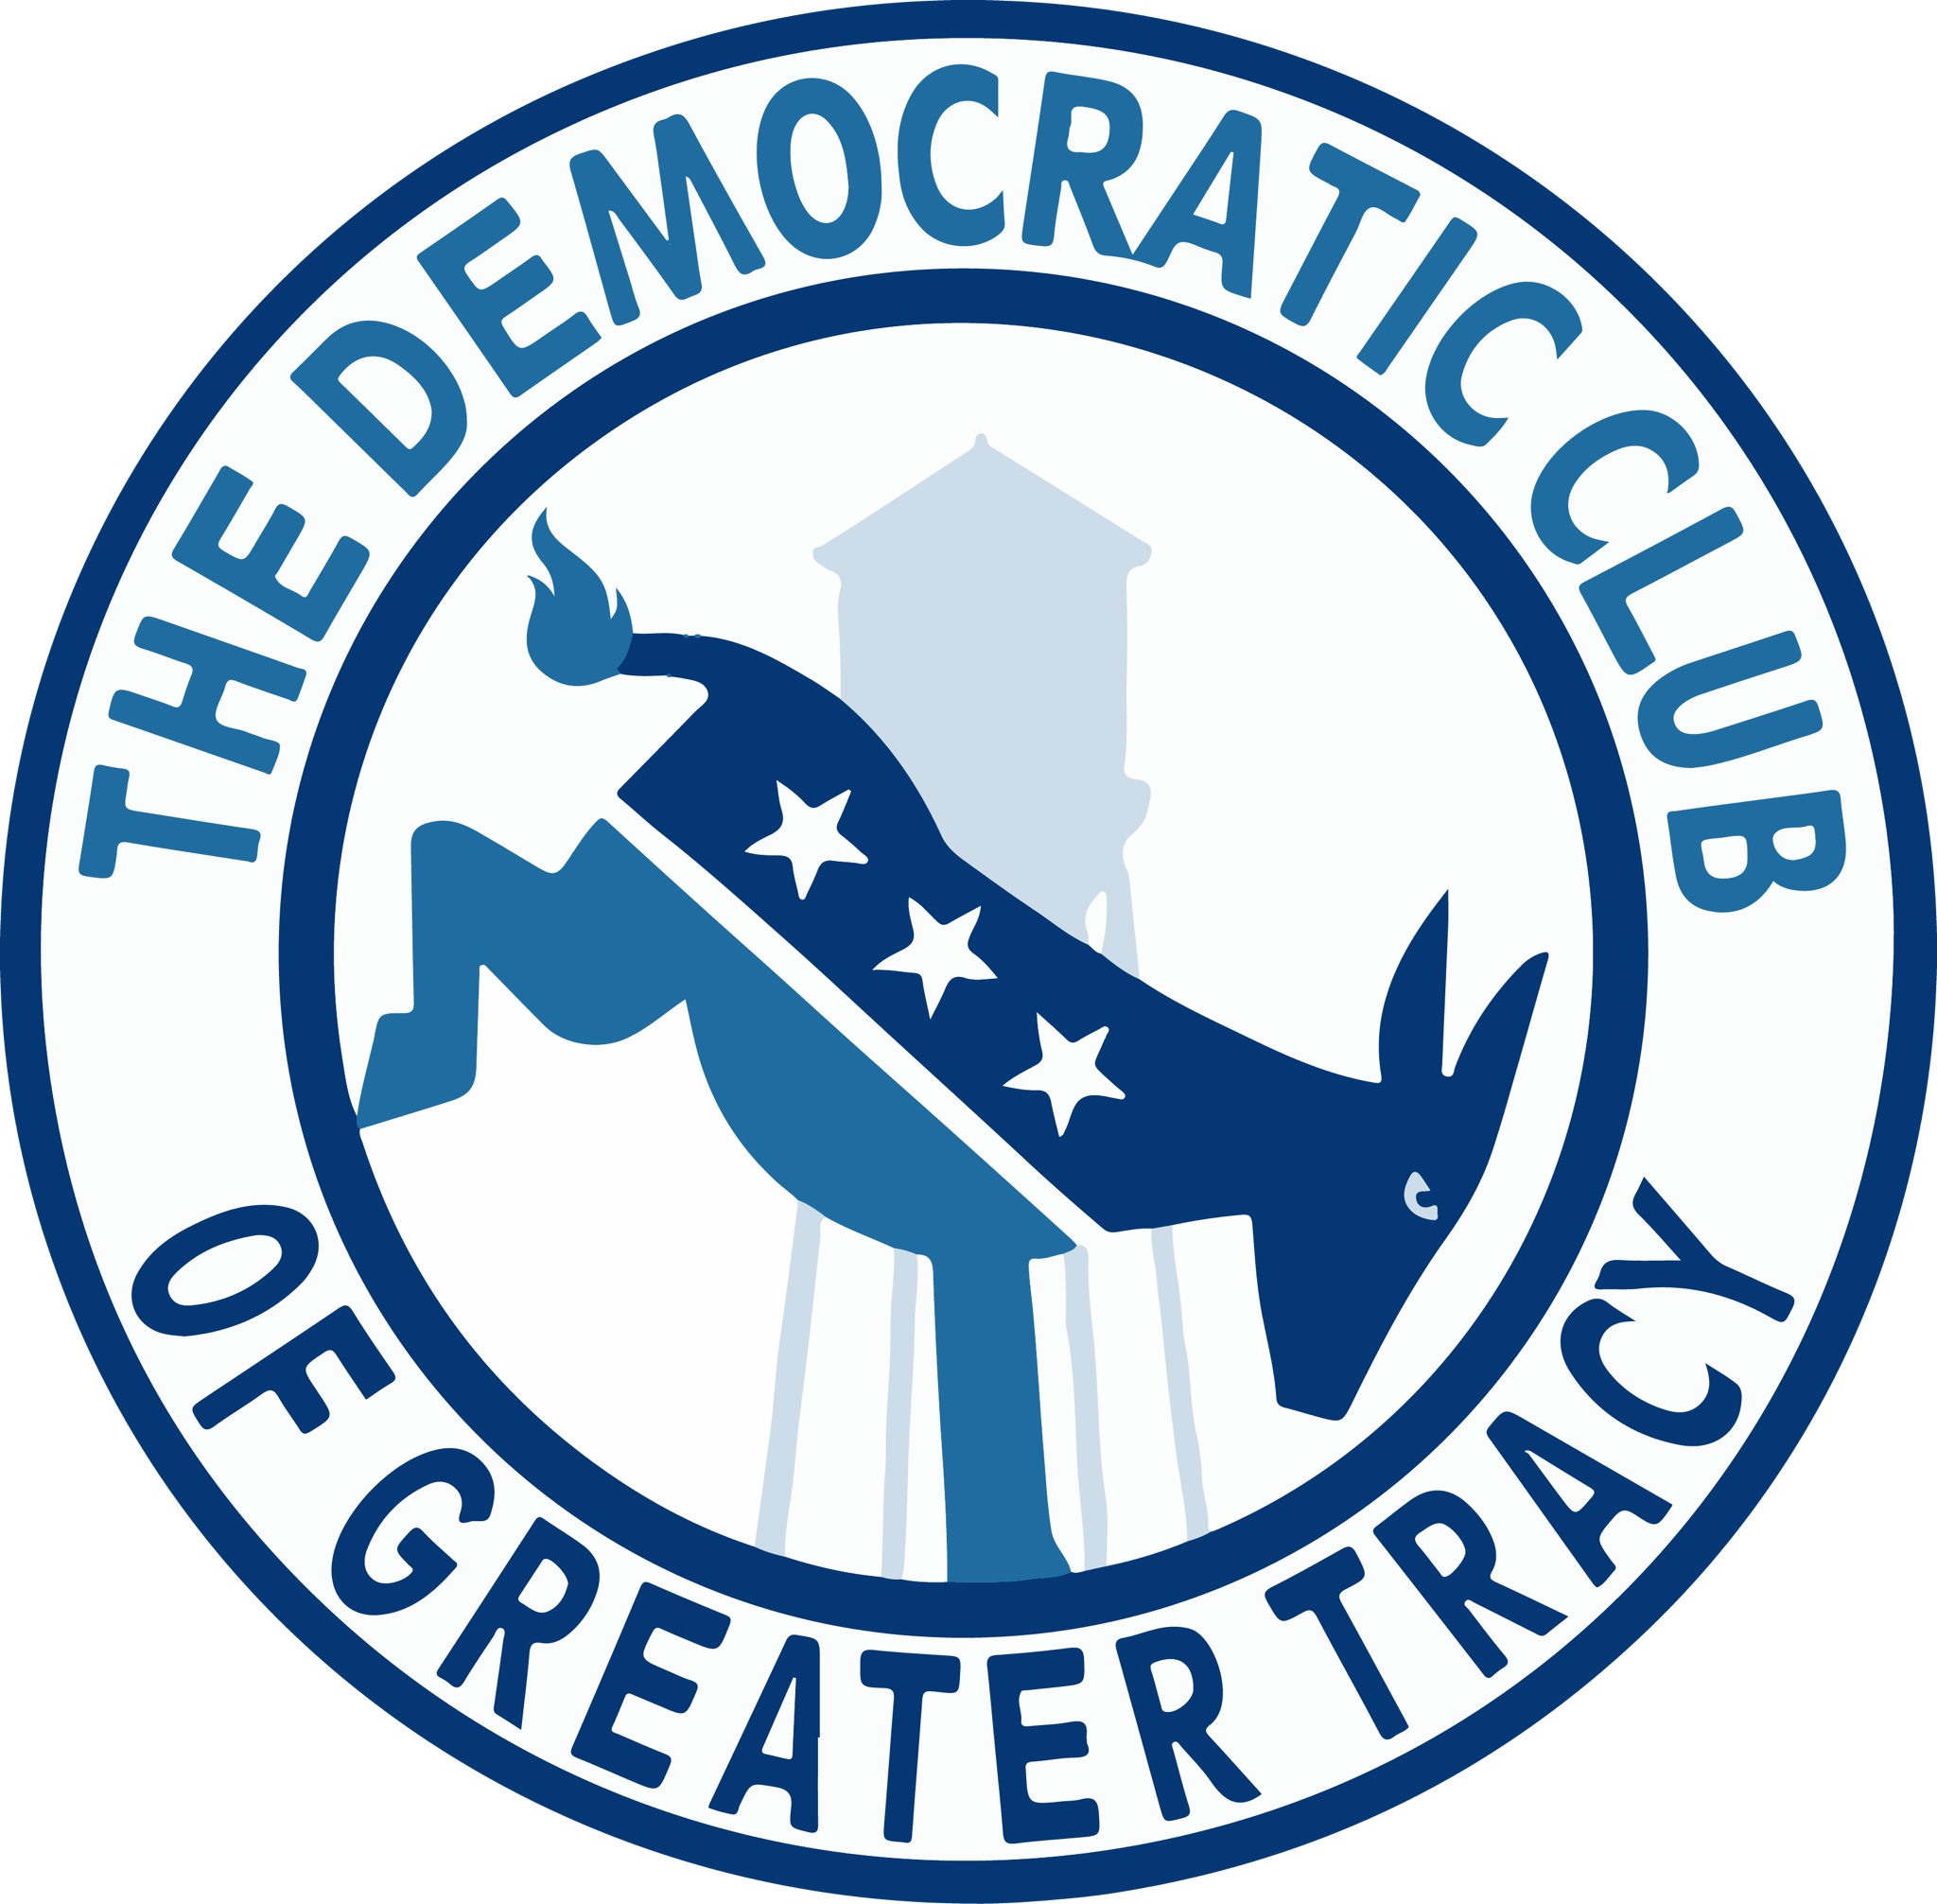 Democratic Club of Greater Tracy